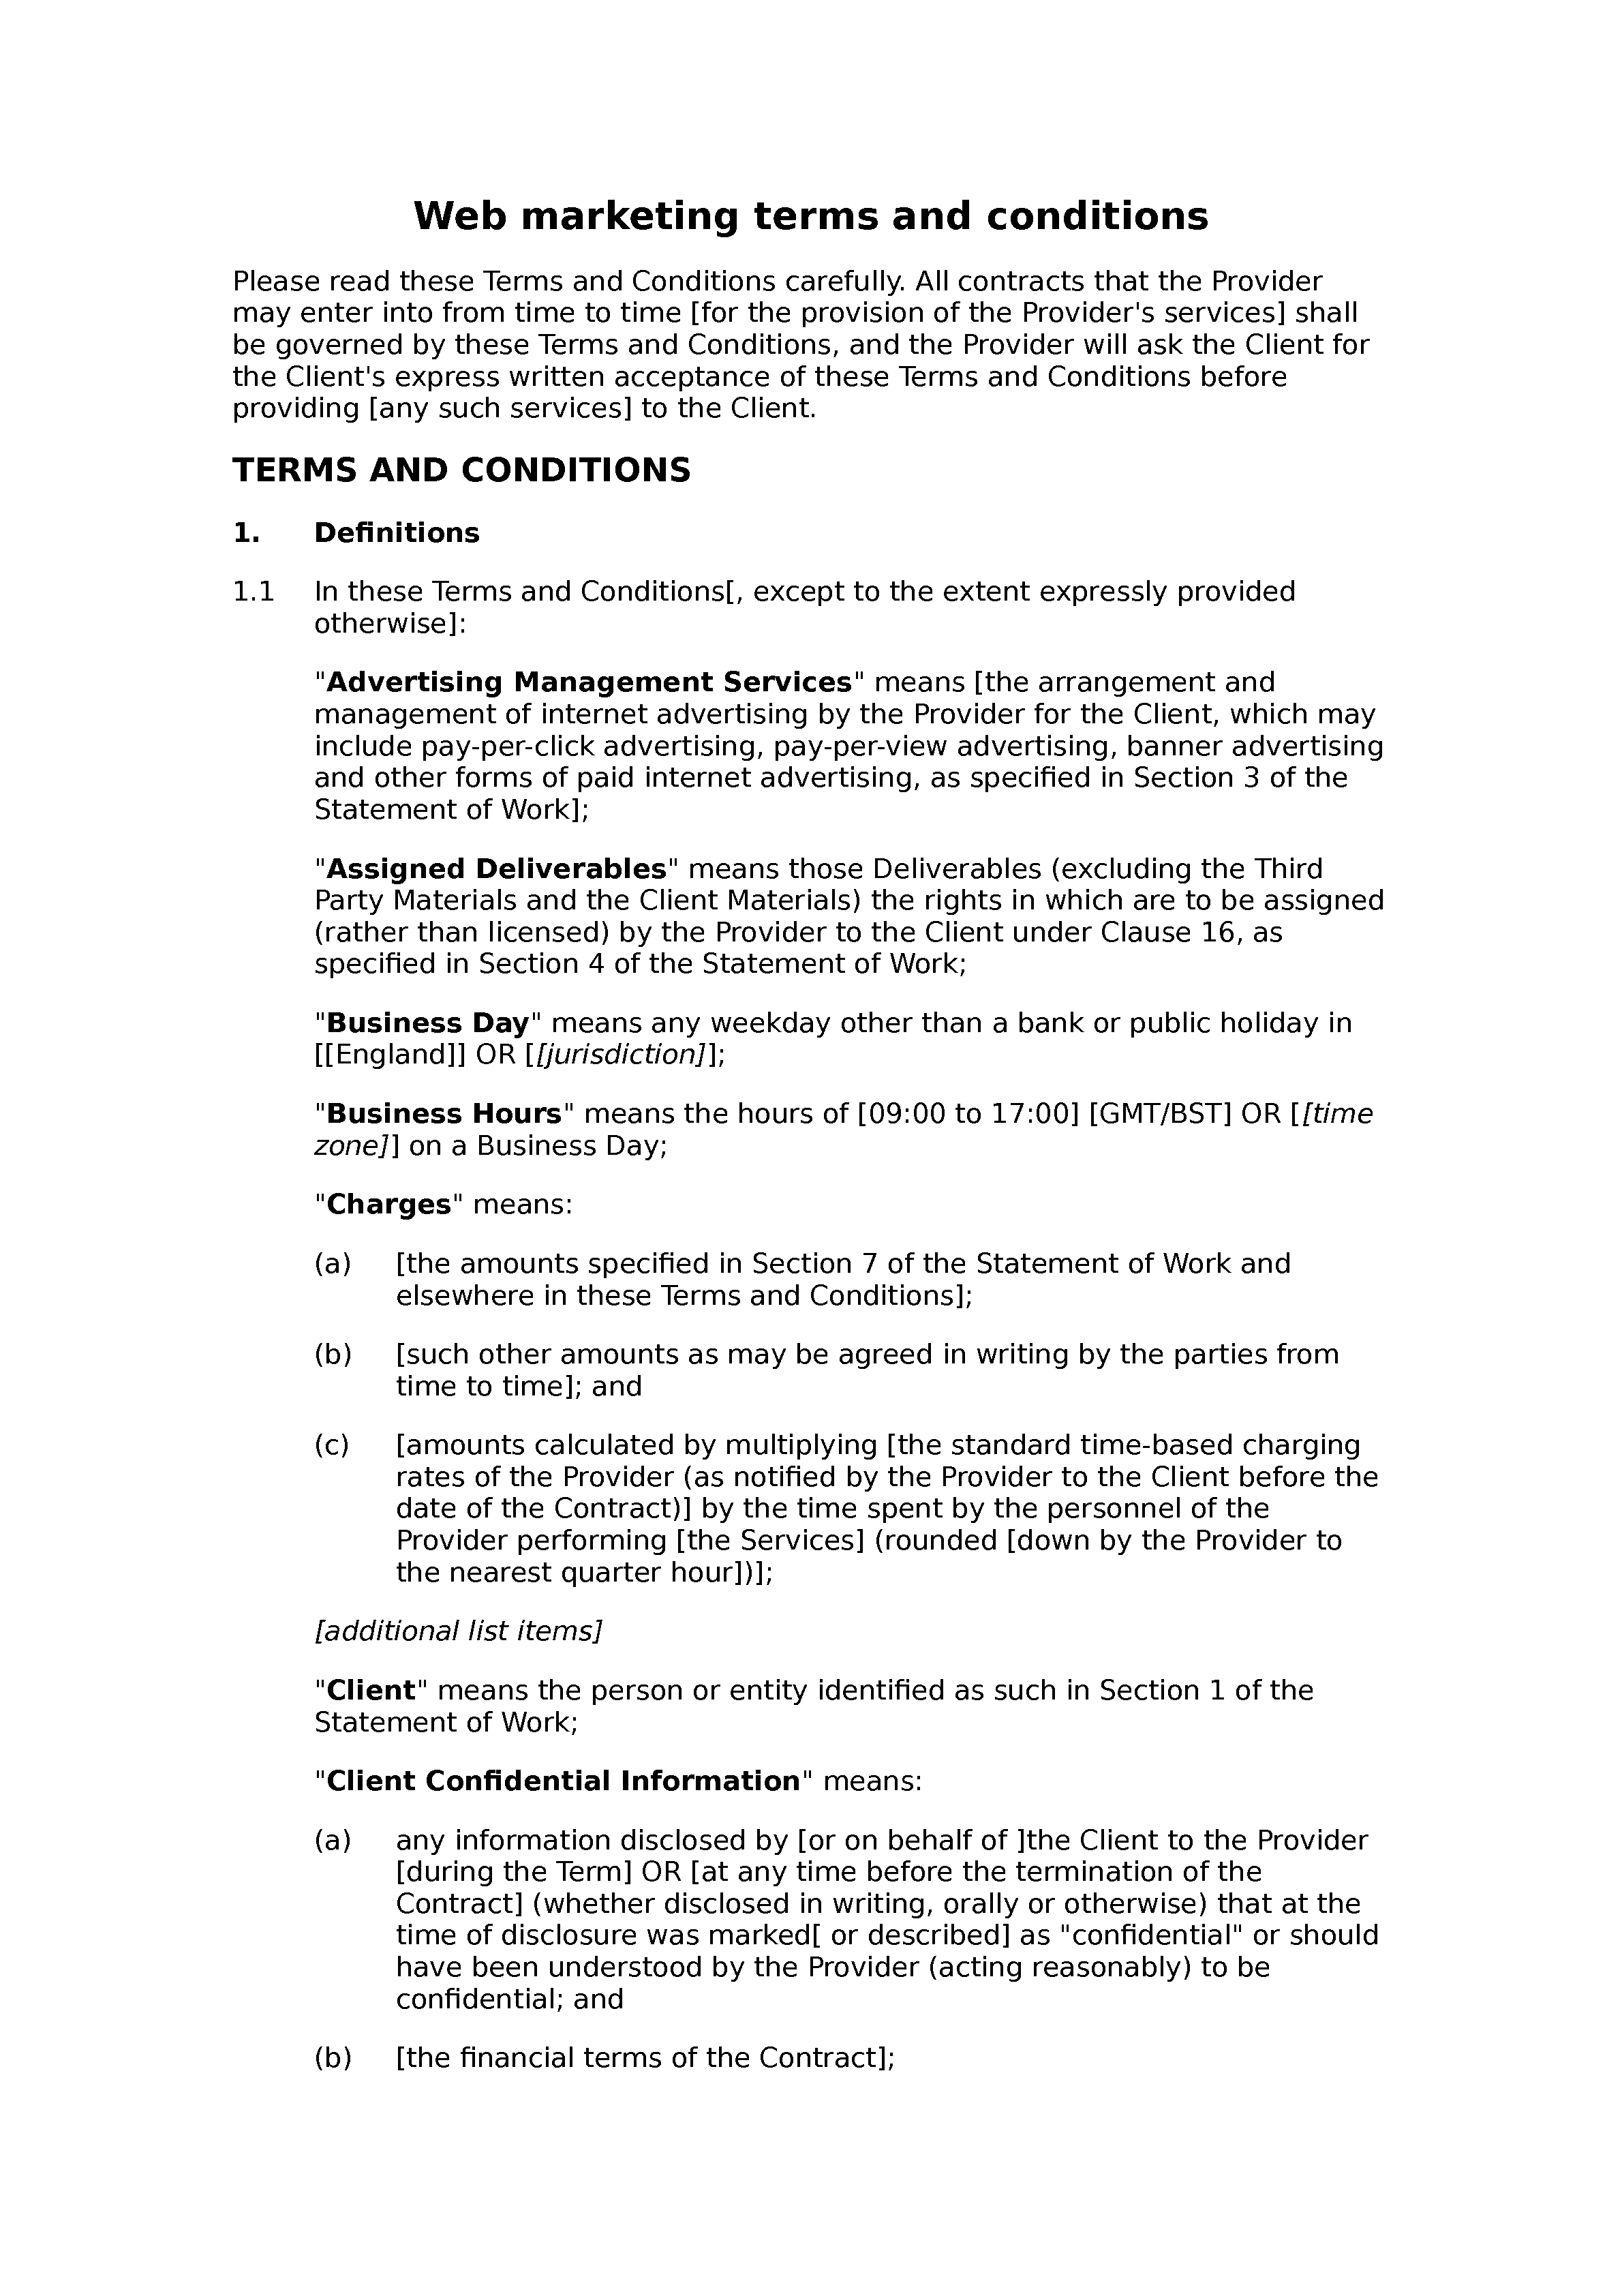 Web marketing terms and conditions document preview